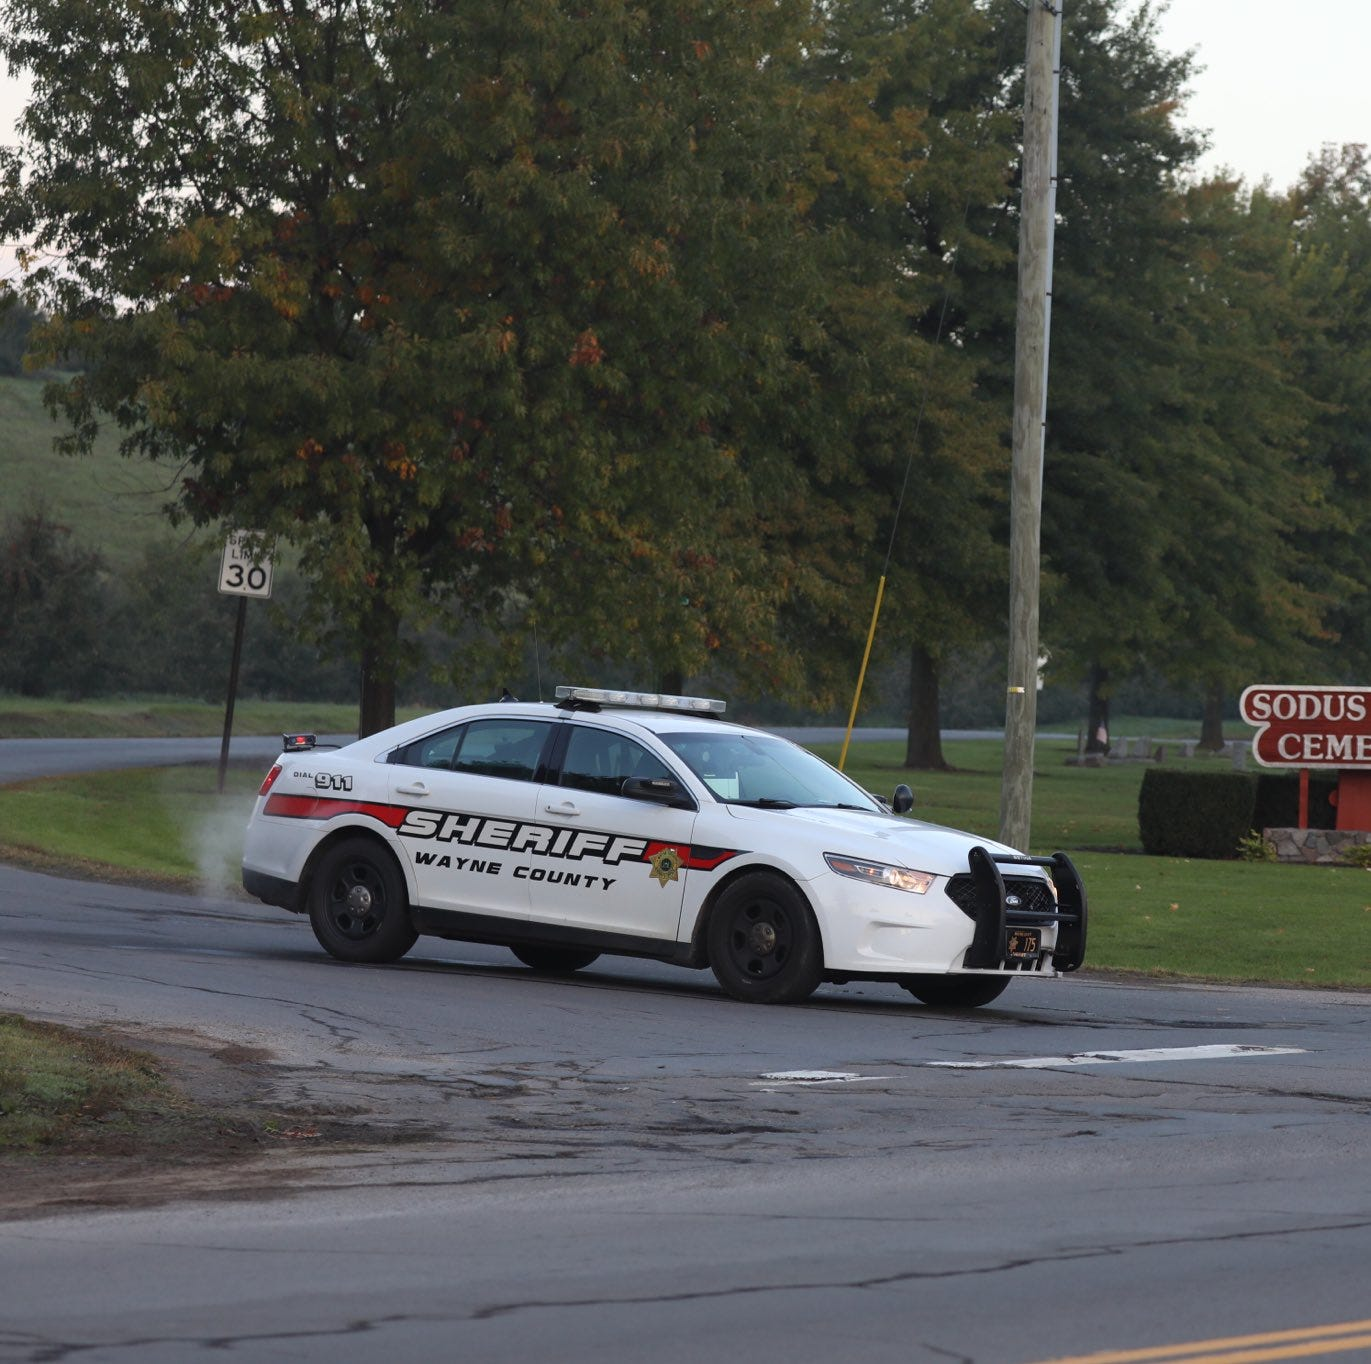 Sodus no stranger to tragedy; six killed in less than a year